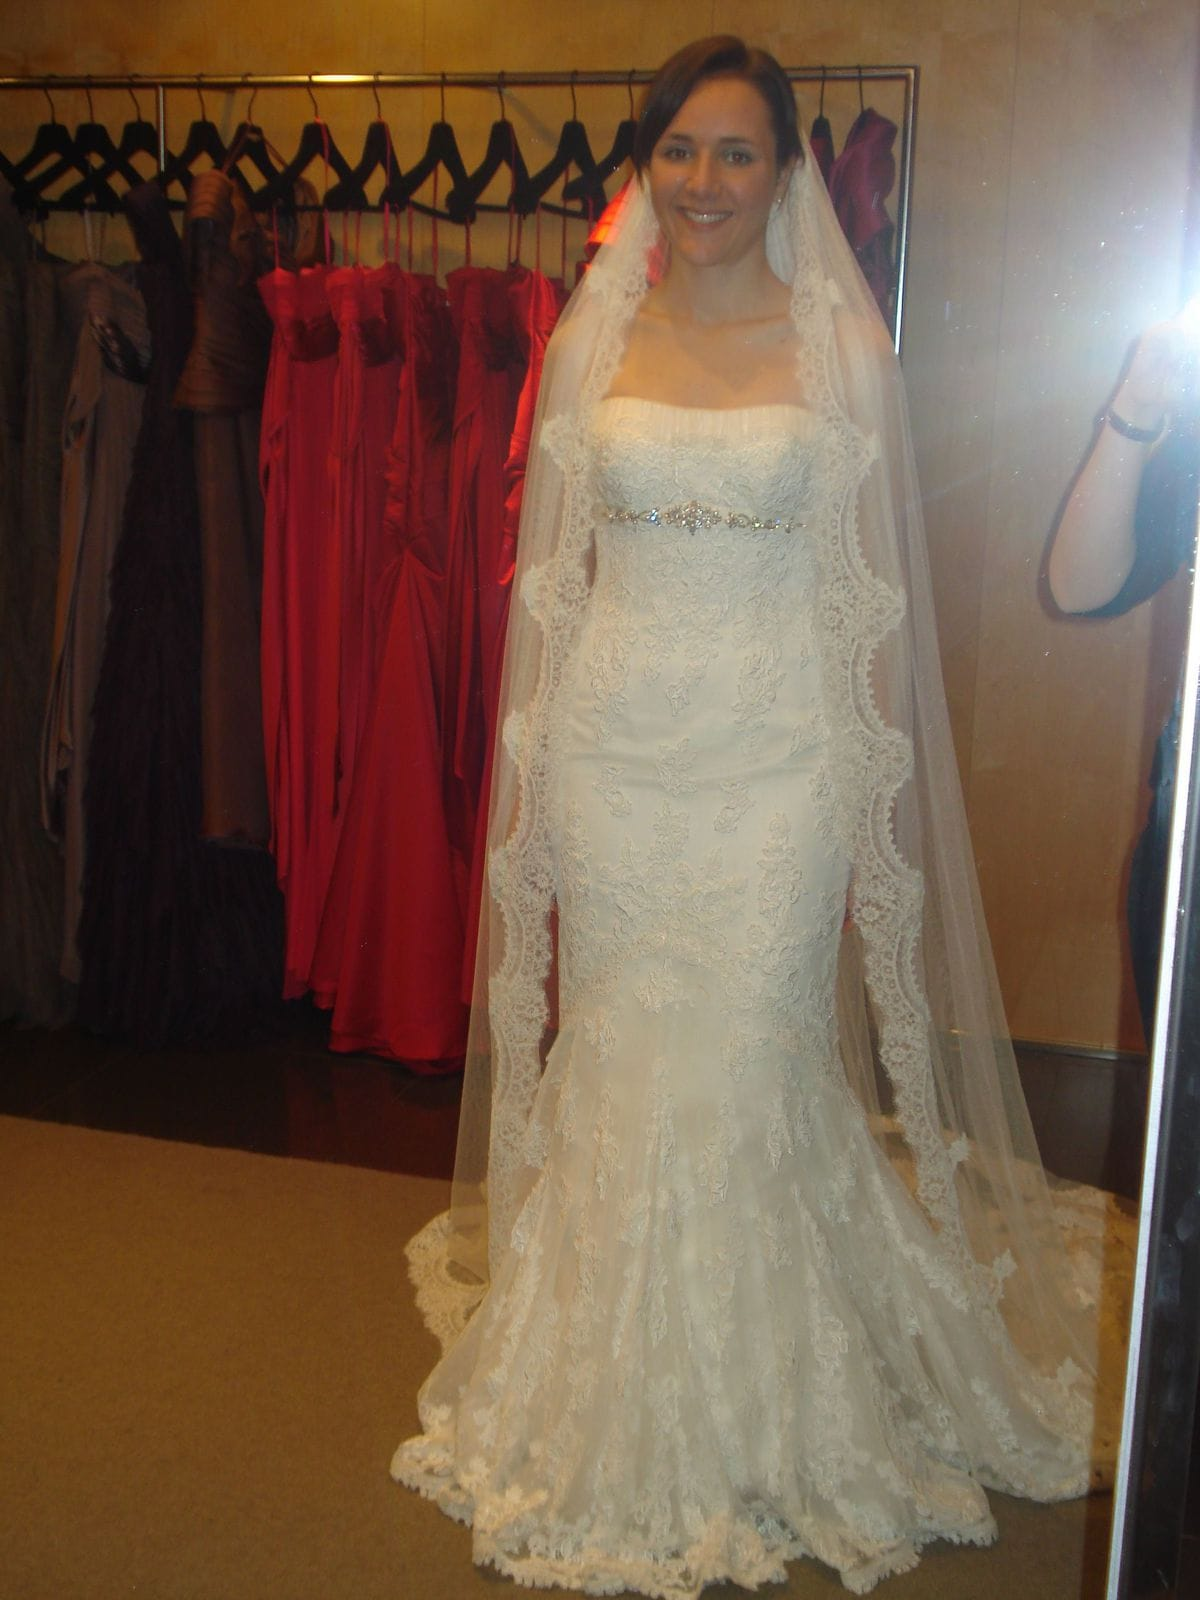 Buying My Wedding Dress in Spain - An Insider\'s Spain Travel Blog ...